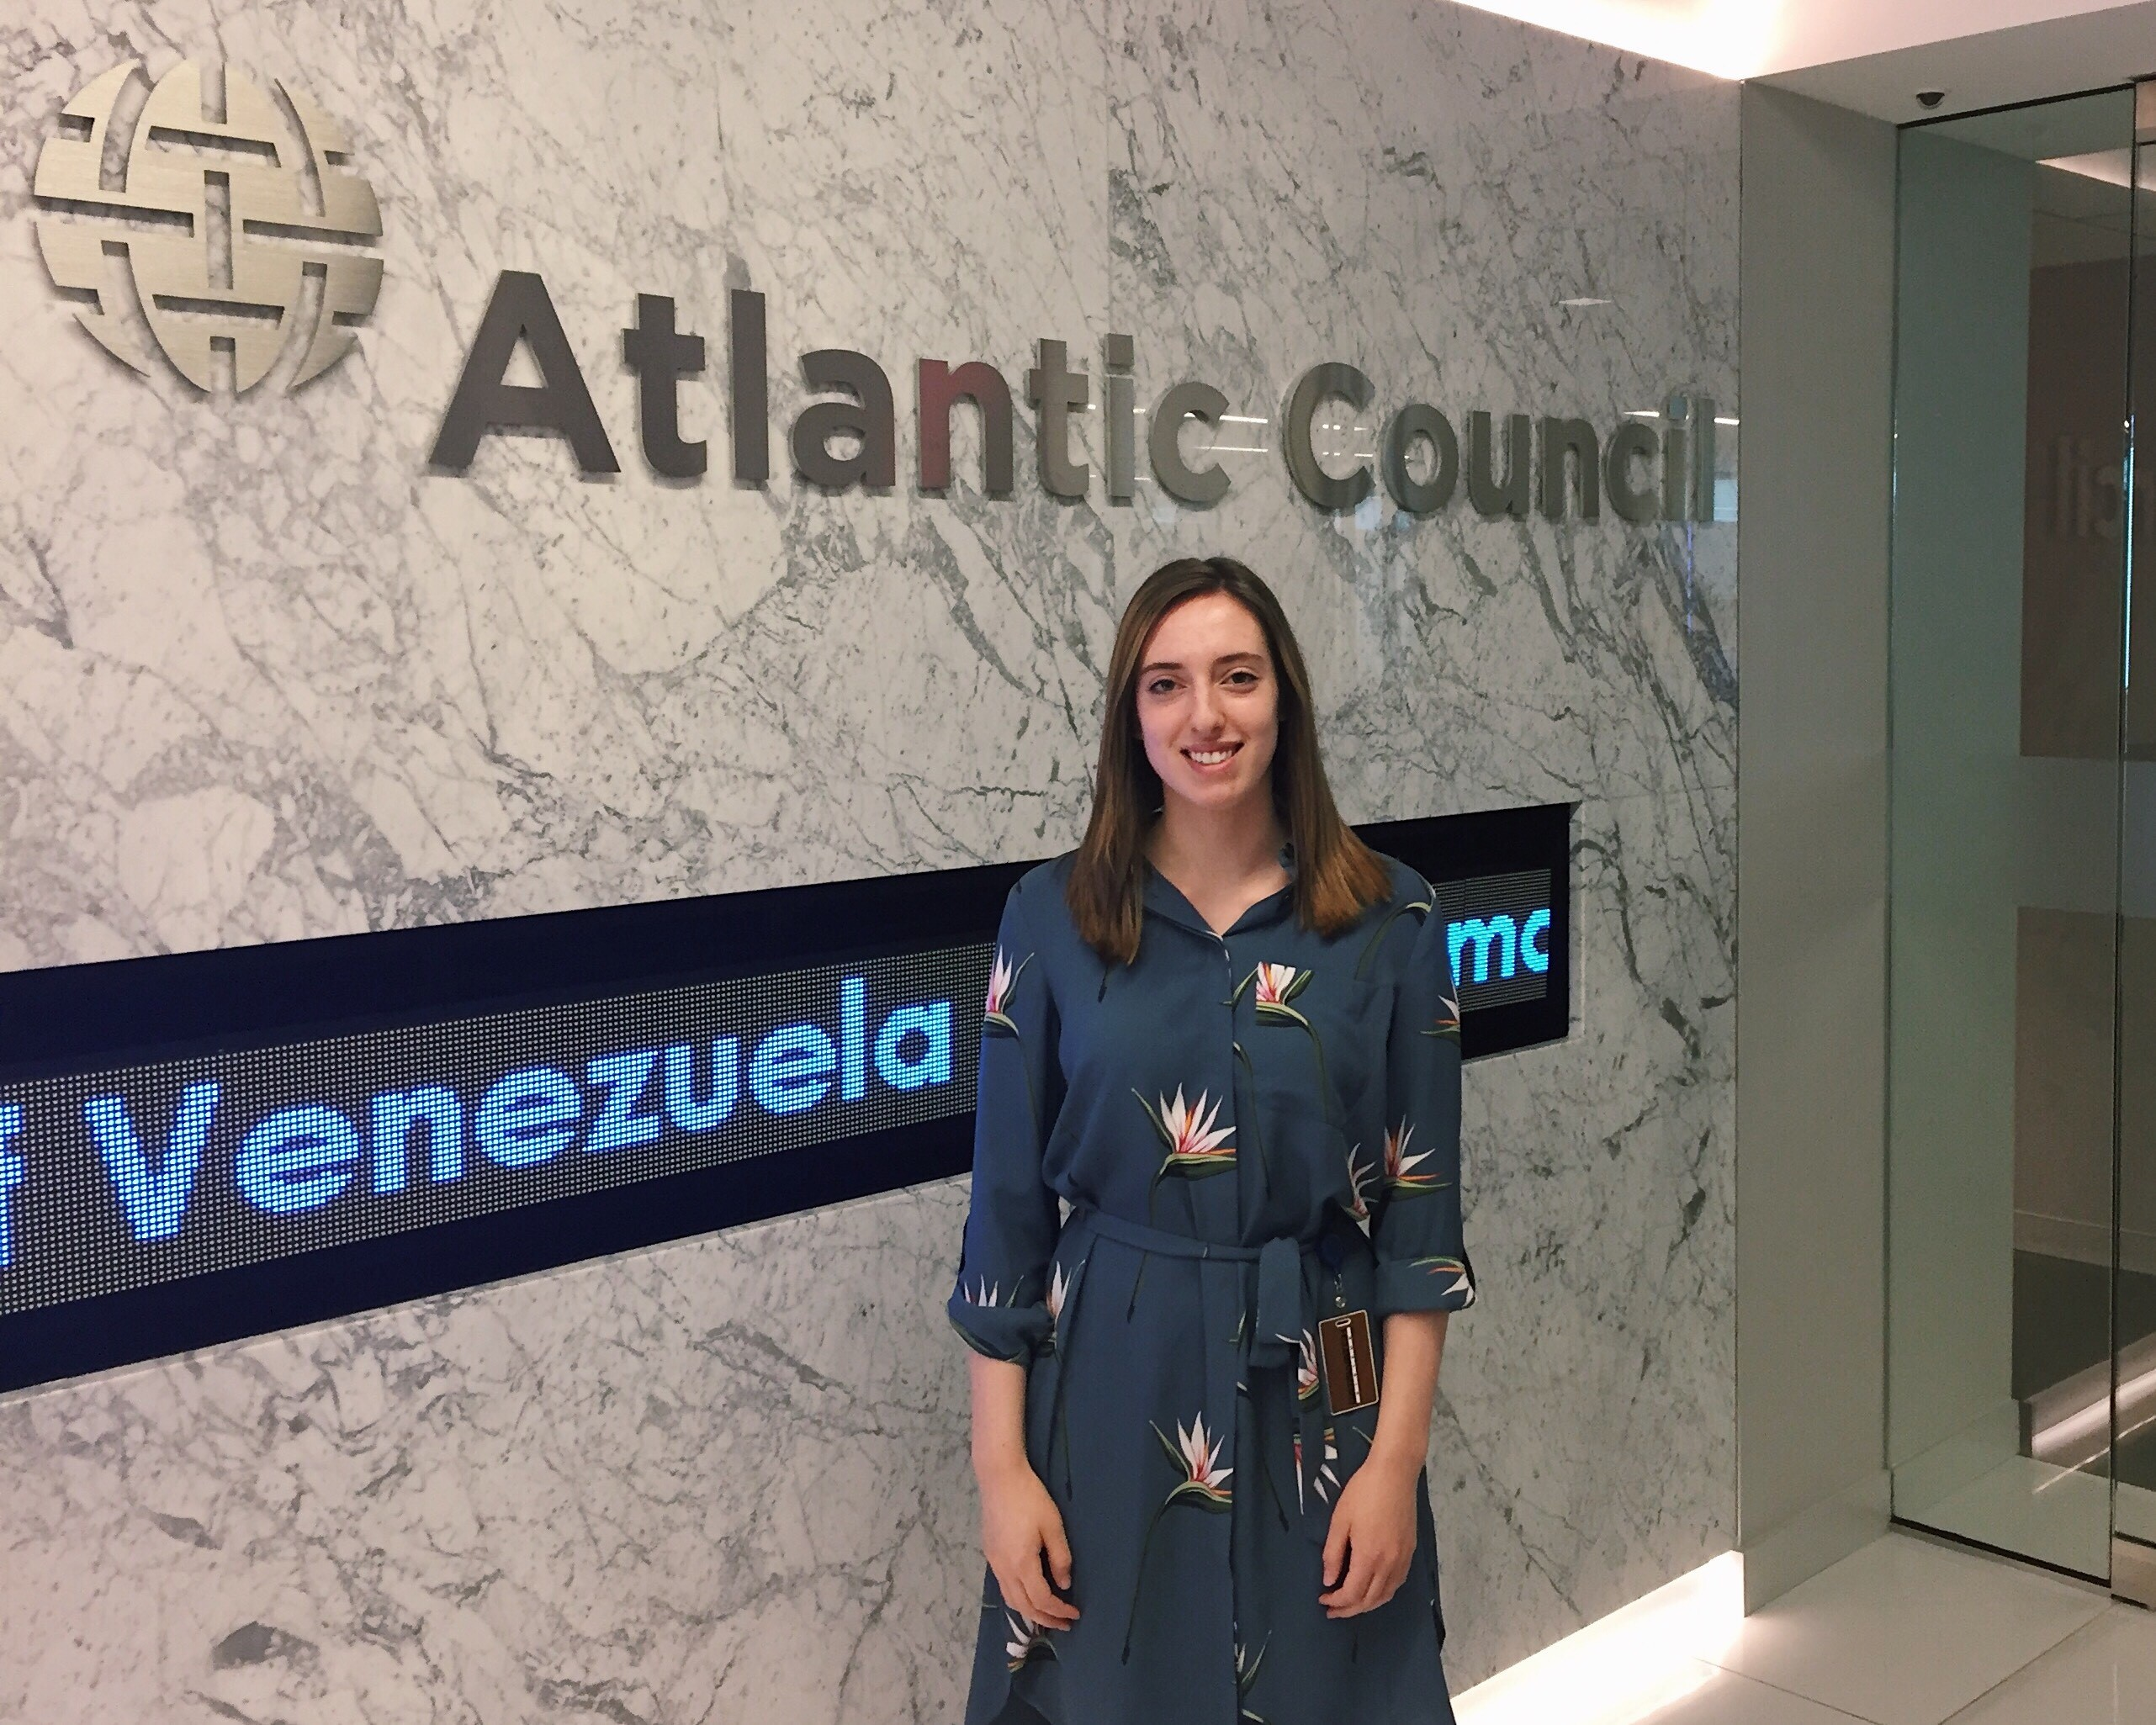 Laura Zwerling '18 is using her internship experience to inform her career goals after graduation. She spent this summer as an events intern at the Atlantic Council.